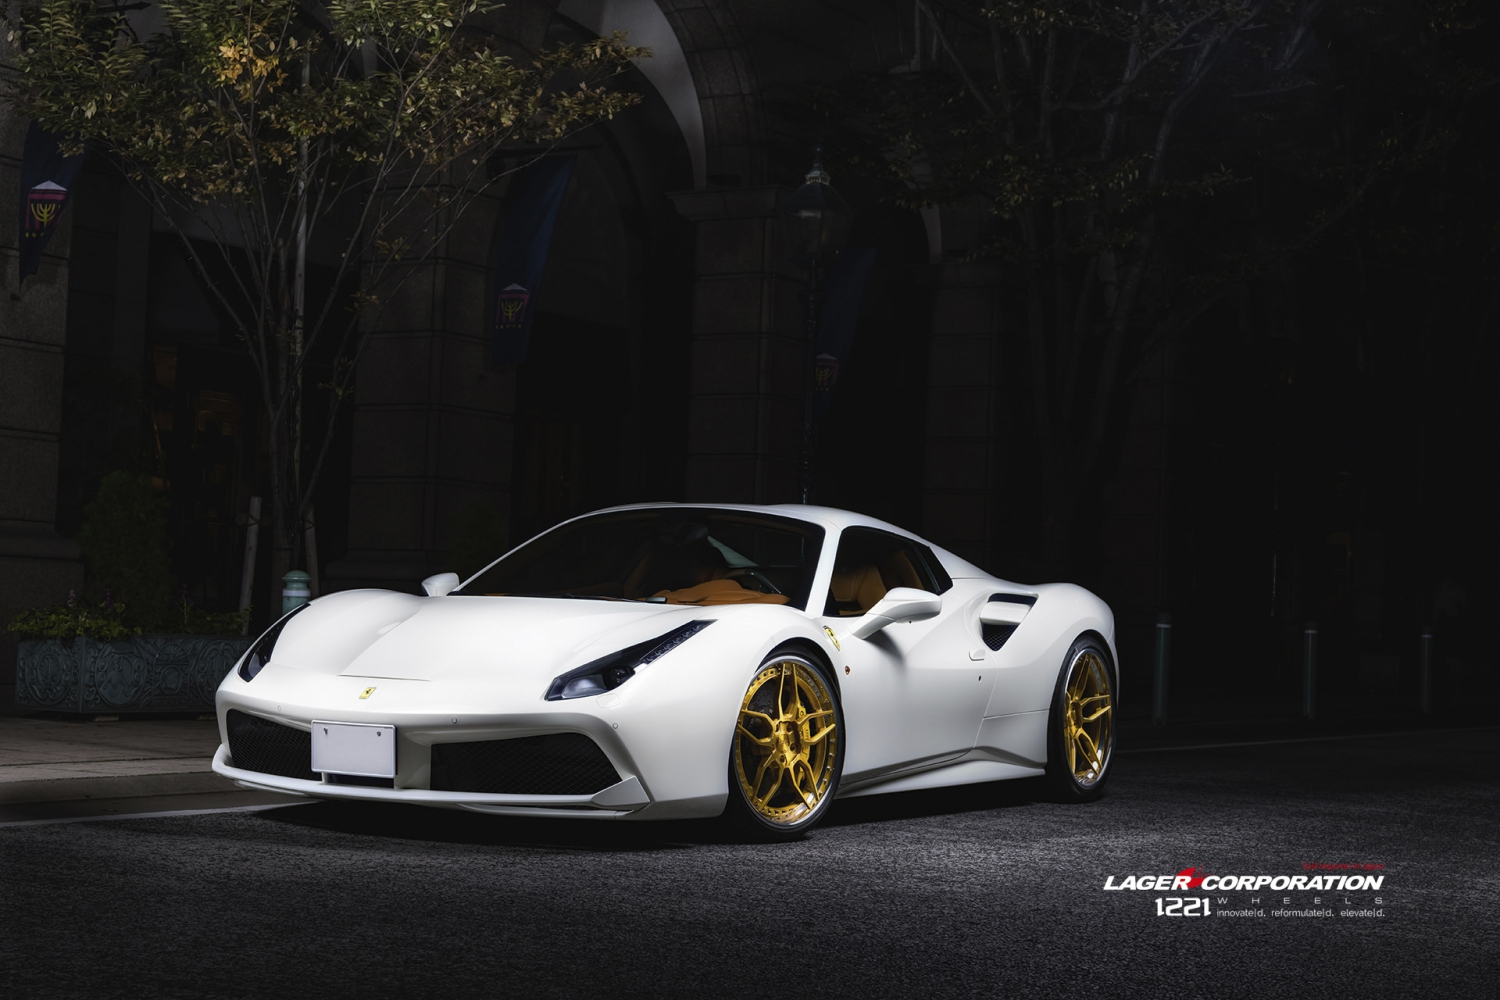 Ferrari 488 gtb spyder coupe forged concave wheels